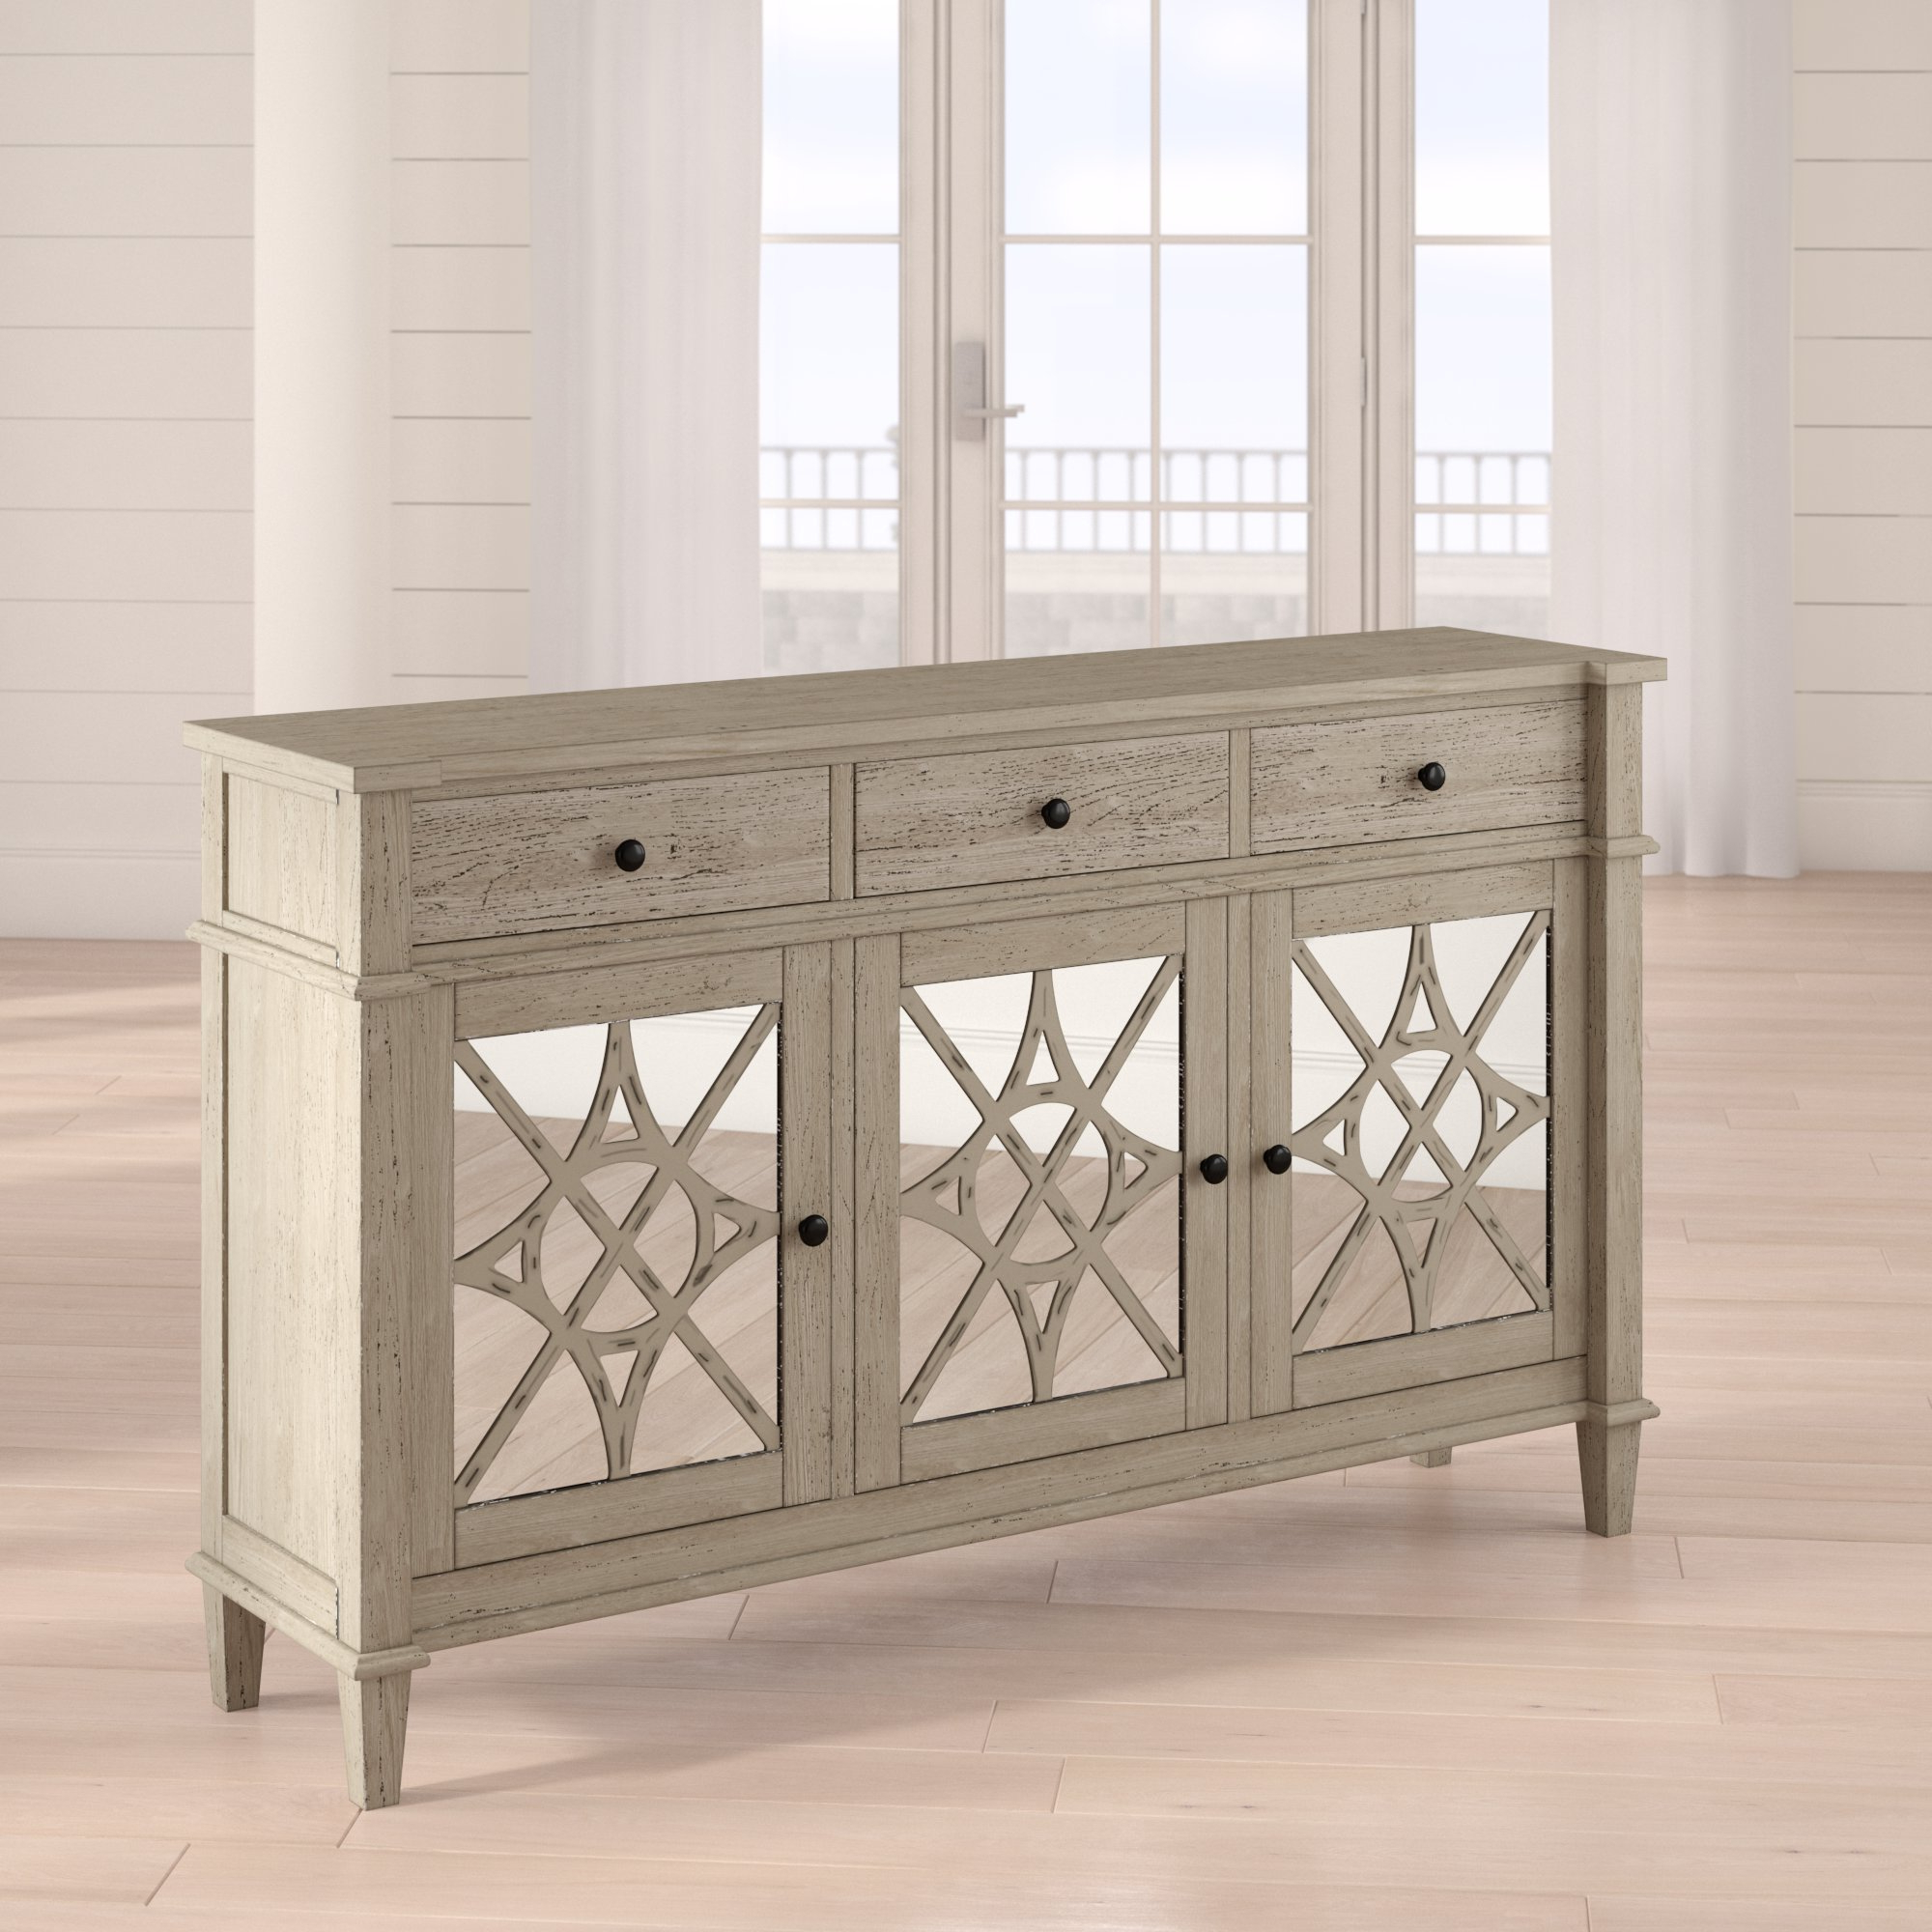 """Rosecliff Heights Parmelee Tv Stand For Tvs Up To 60"""" With Fireplace Pertaining To Most Recently Released Parmelee Tv Stands For Tvs Up To 65"""" (Gallery 7 of 20)"""